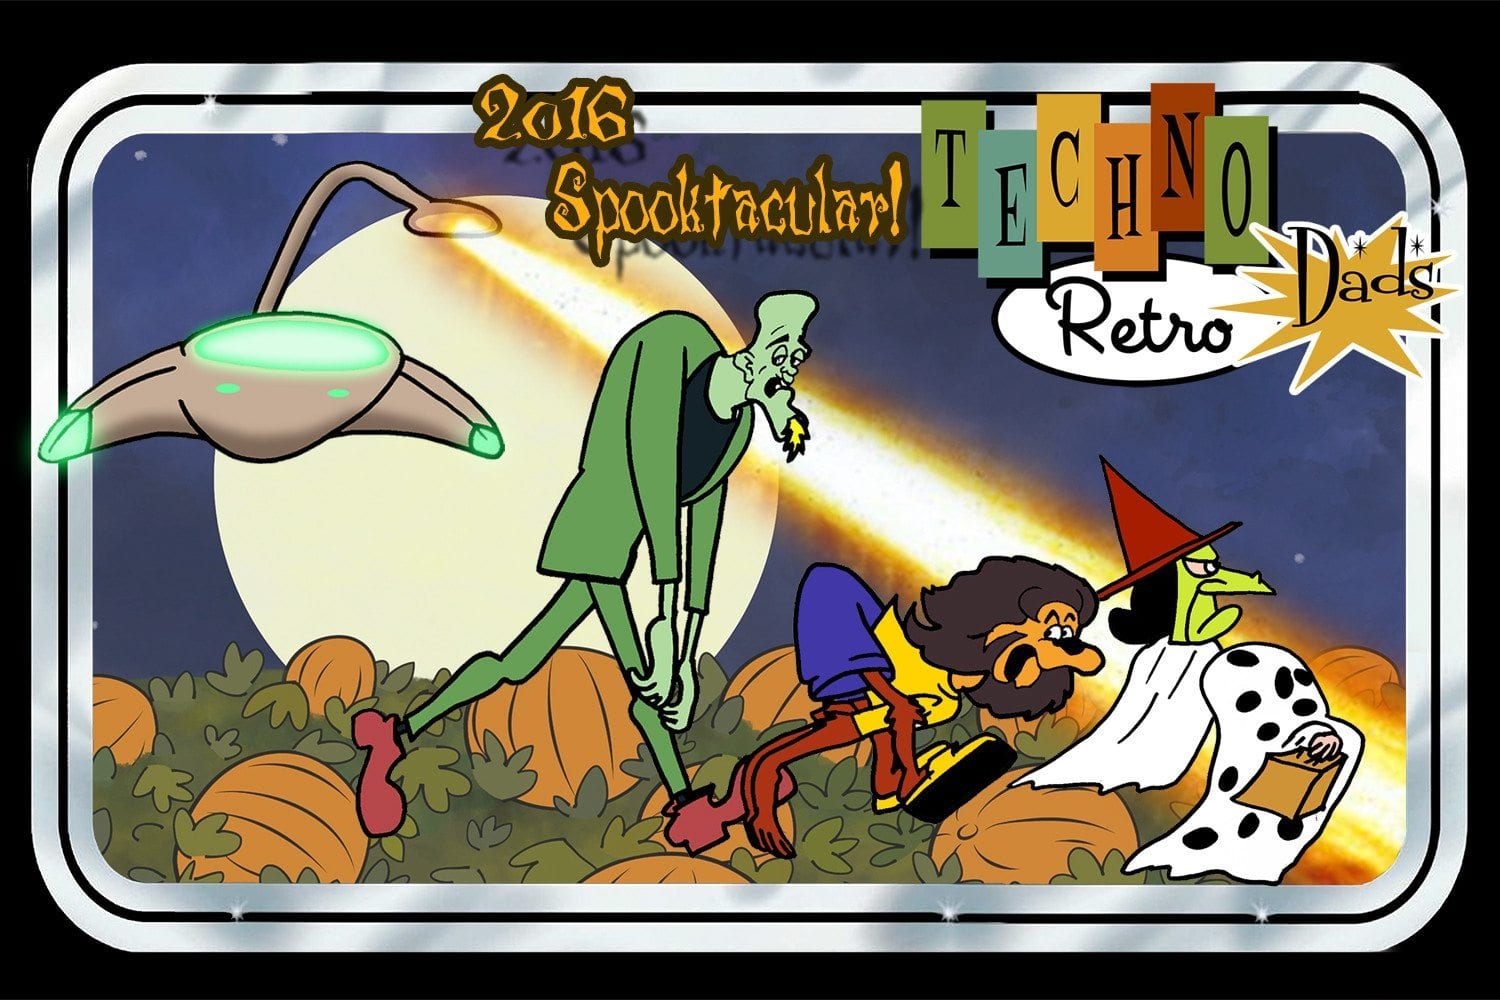 TechnoRetro Dads Spooktacular 2016